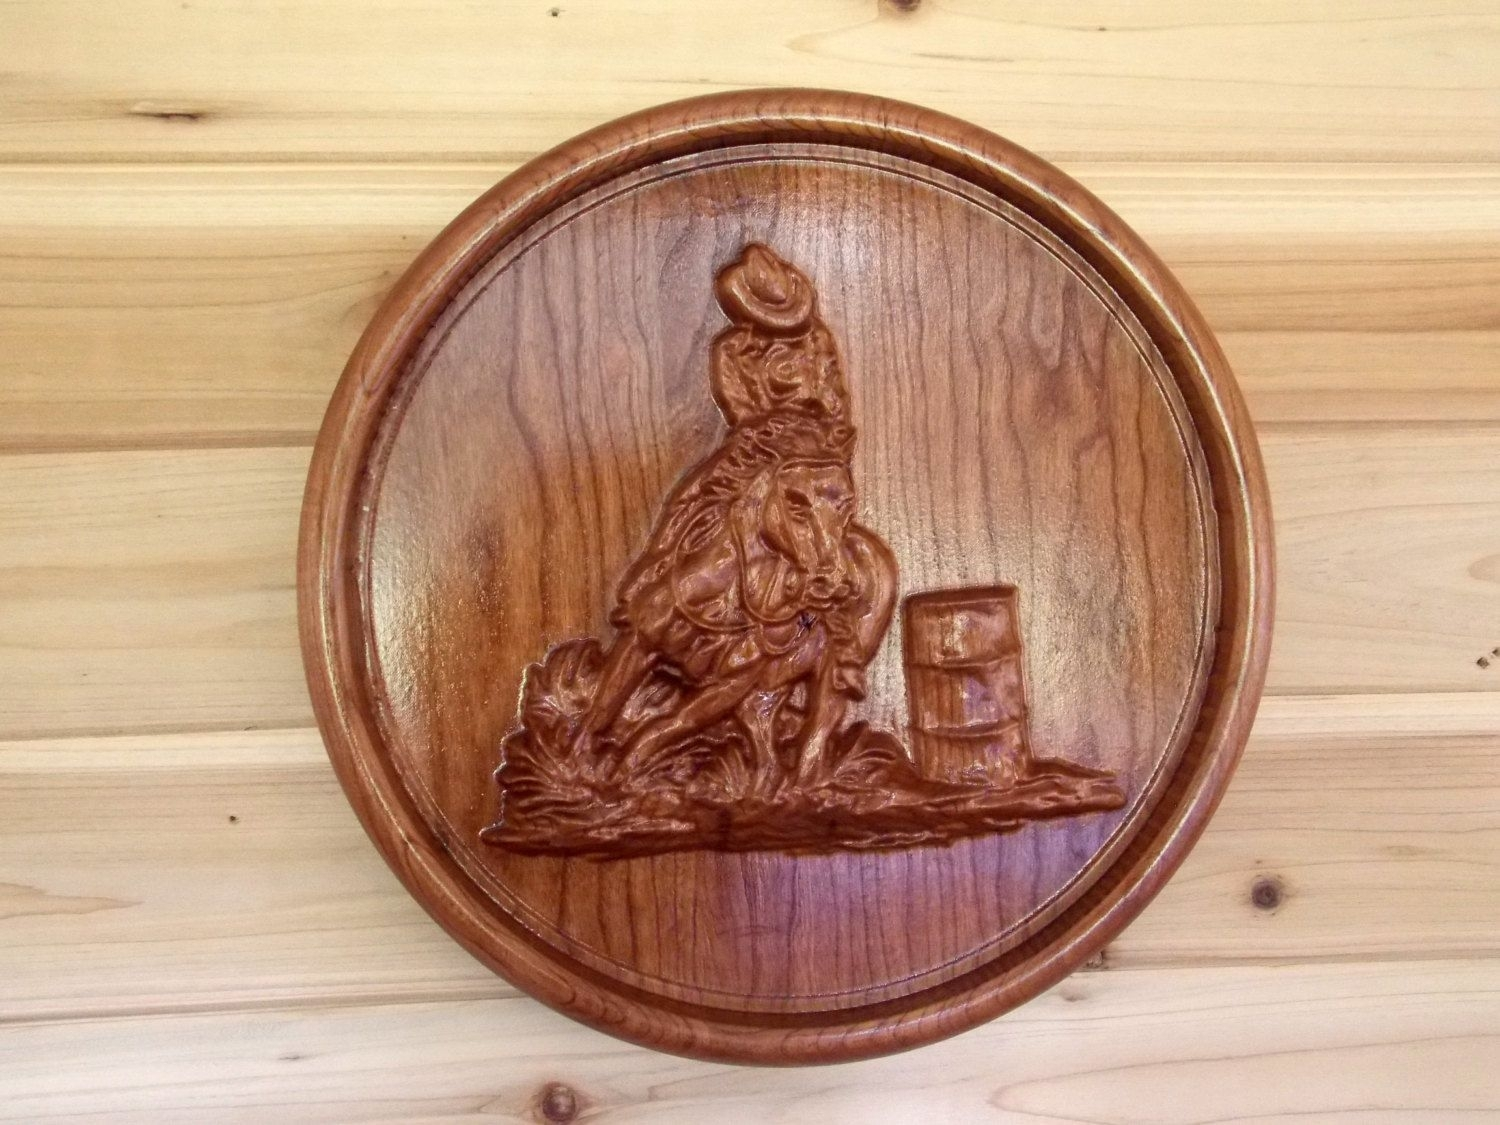 Barrel Racing Cowboy – Wood Carving Wall Hanging – Western Wall Pertaining To Recent Western Wall Art (View 16 of 20)